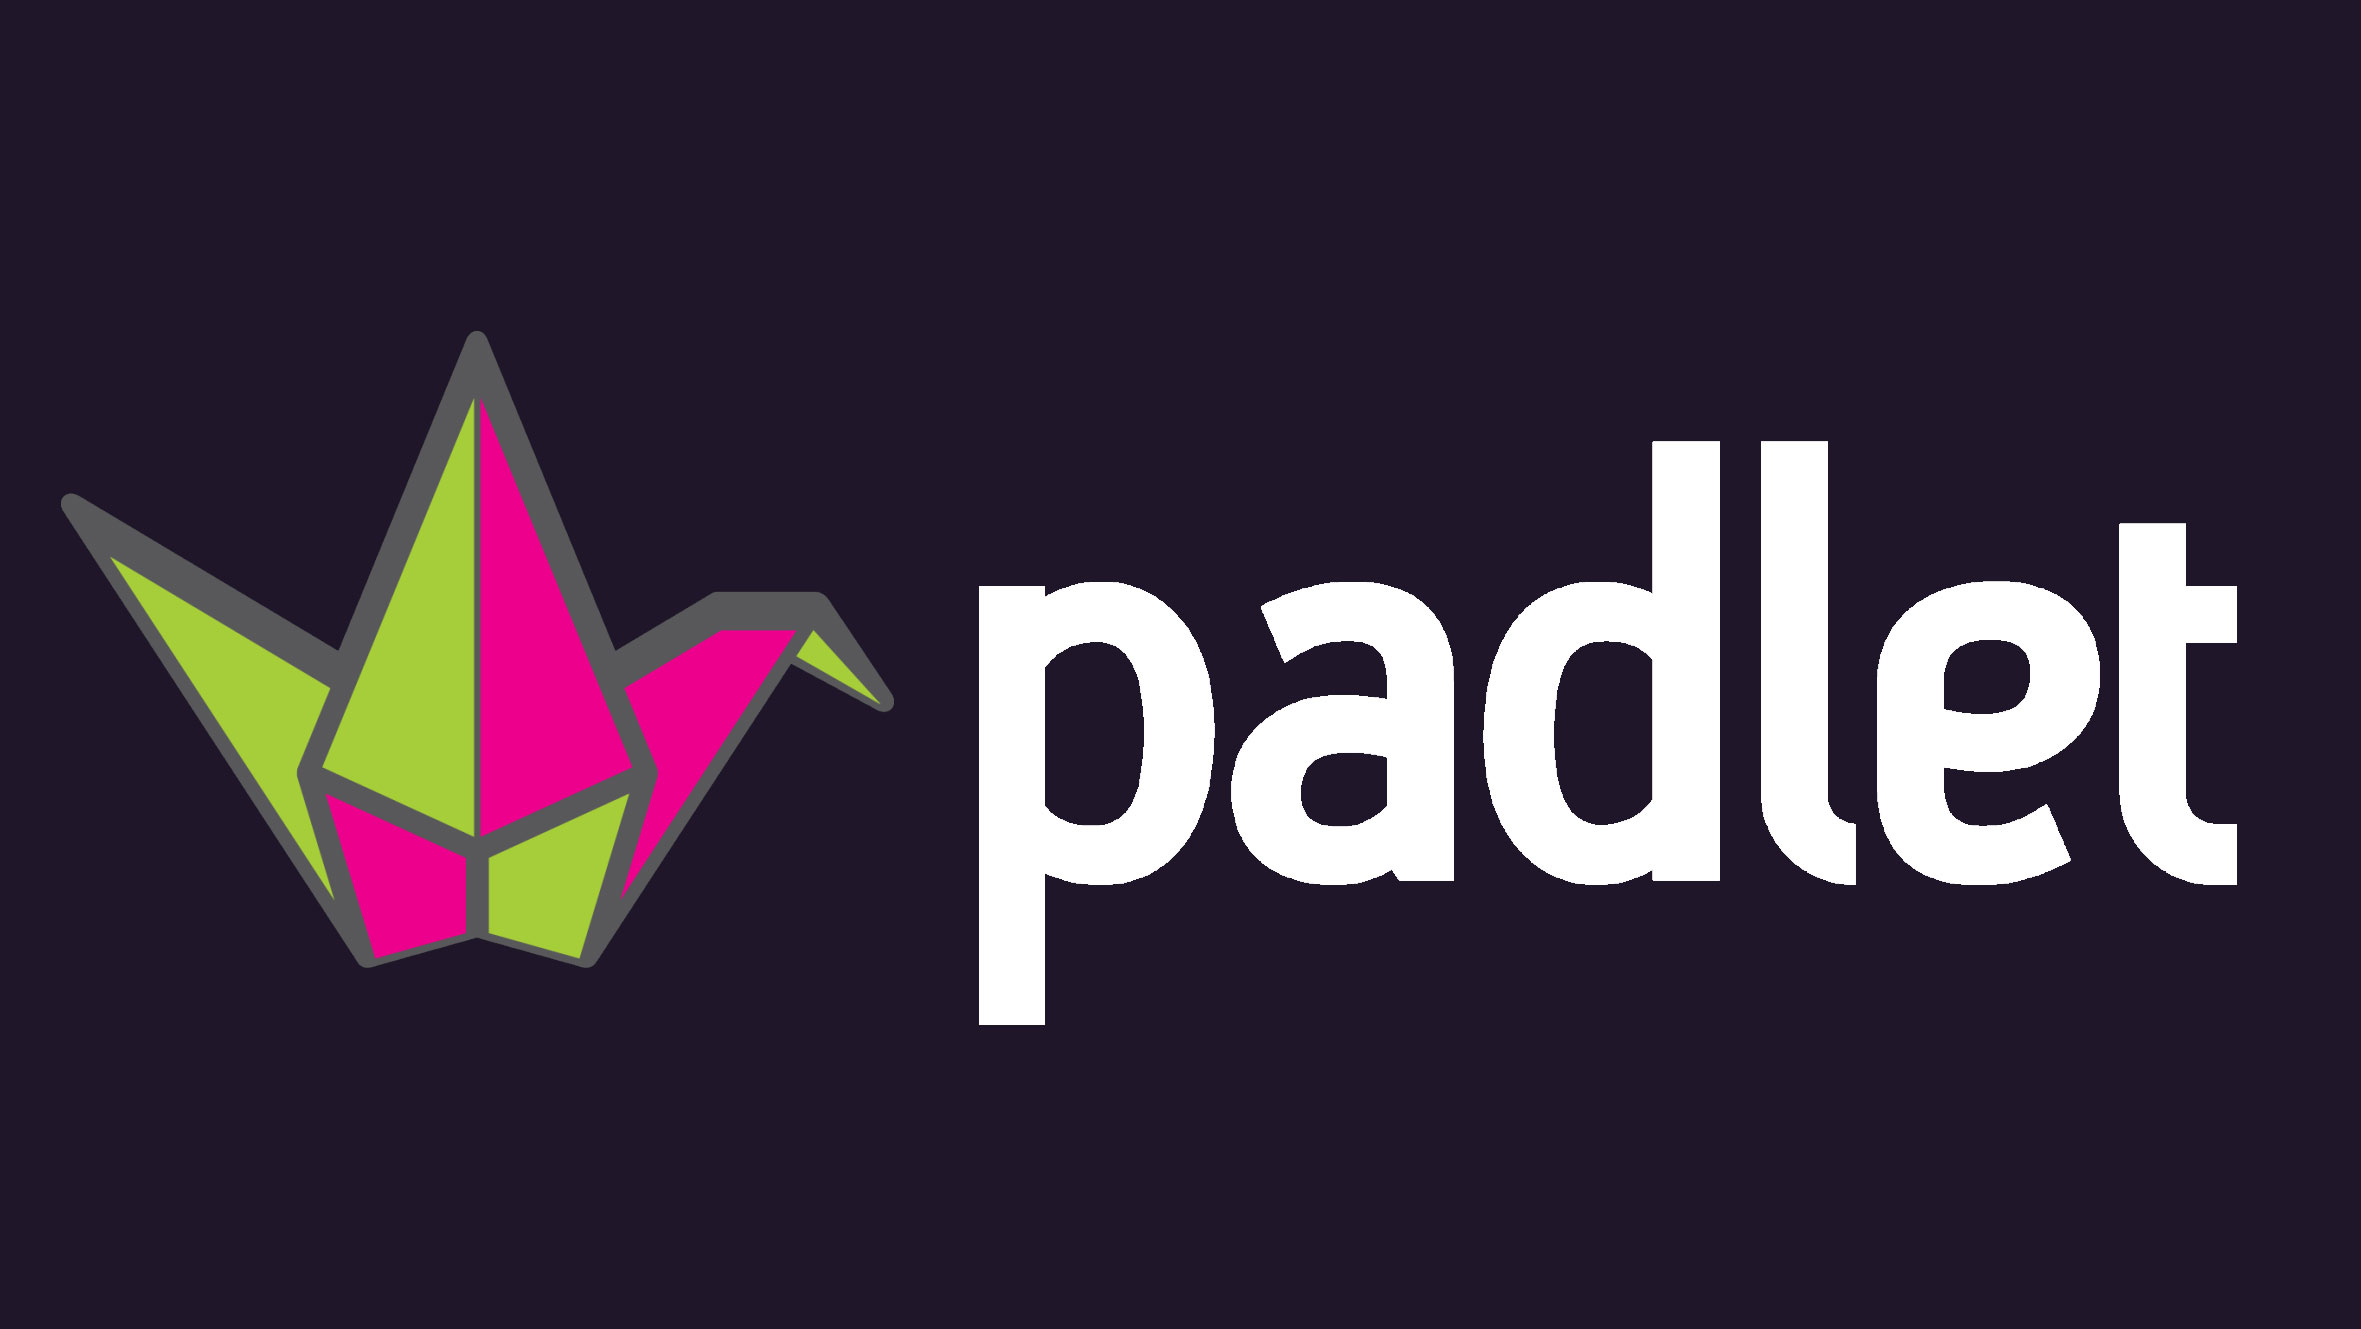 padlet_logo_with_name1.jpg